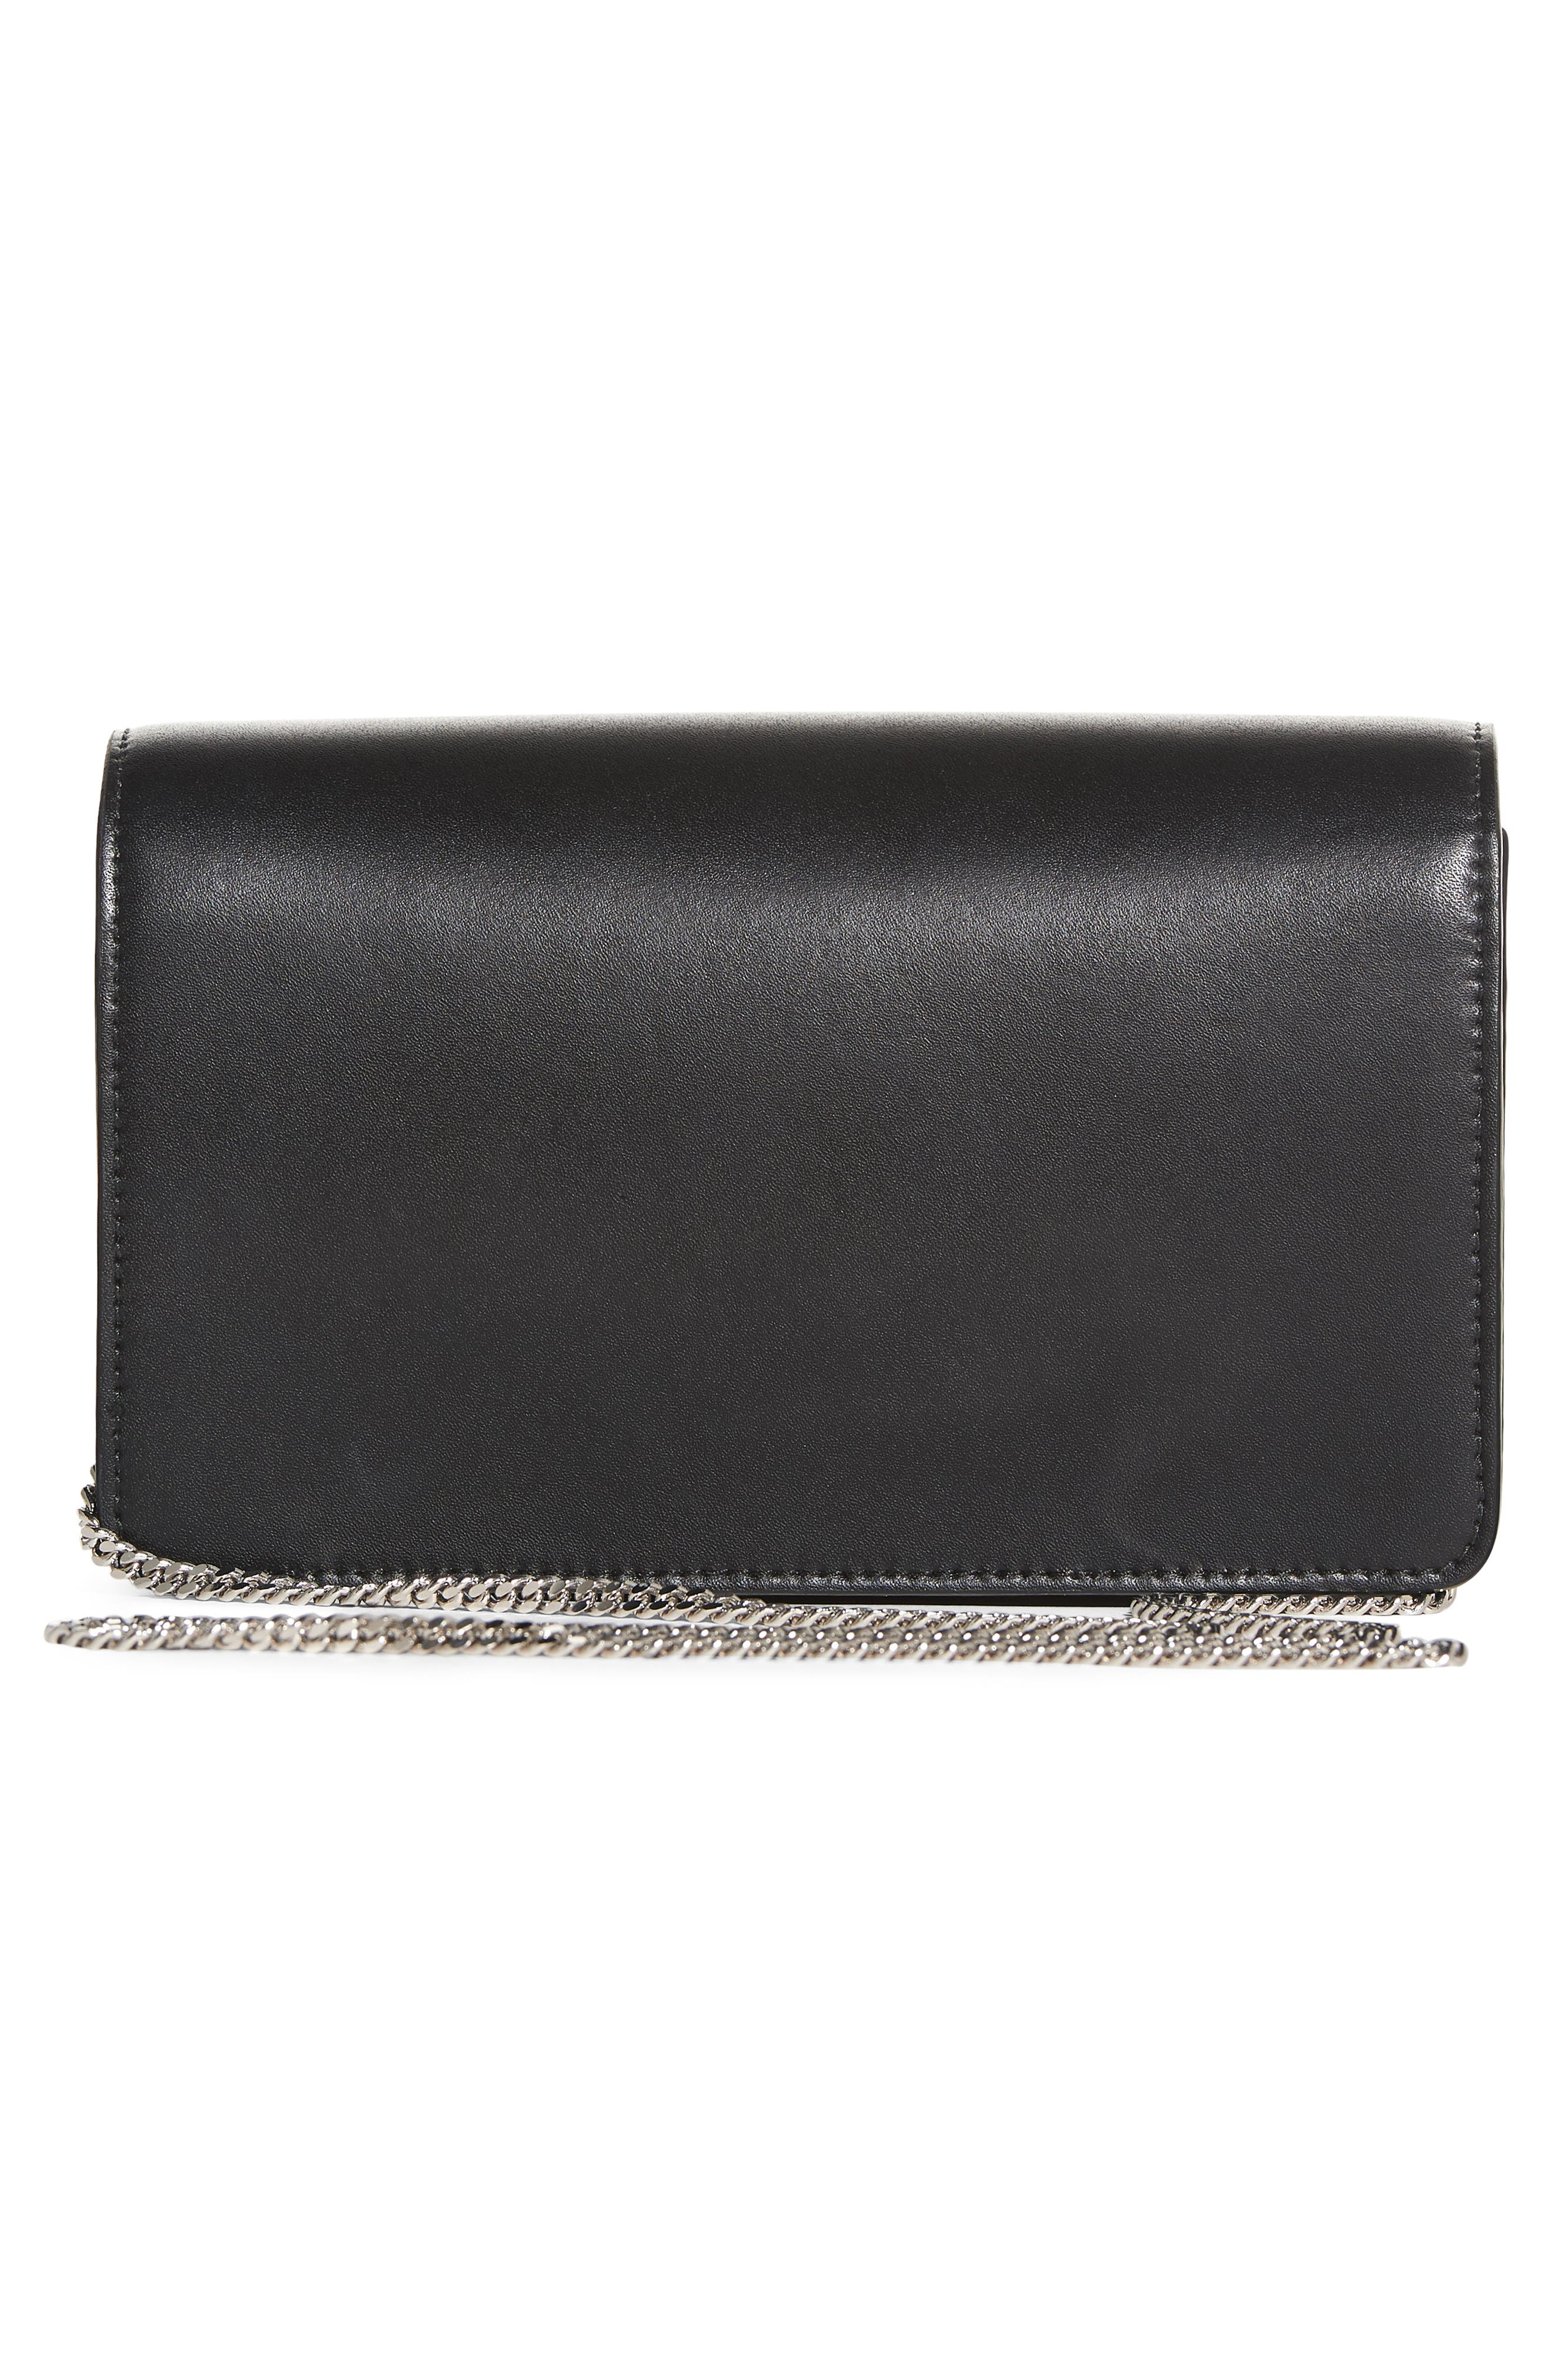 Rainbow Studded Leather Tube Wallet on a Chain,                             Alternate thumbnail 3, color,                             Black Multi